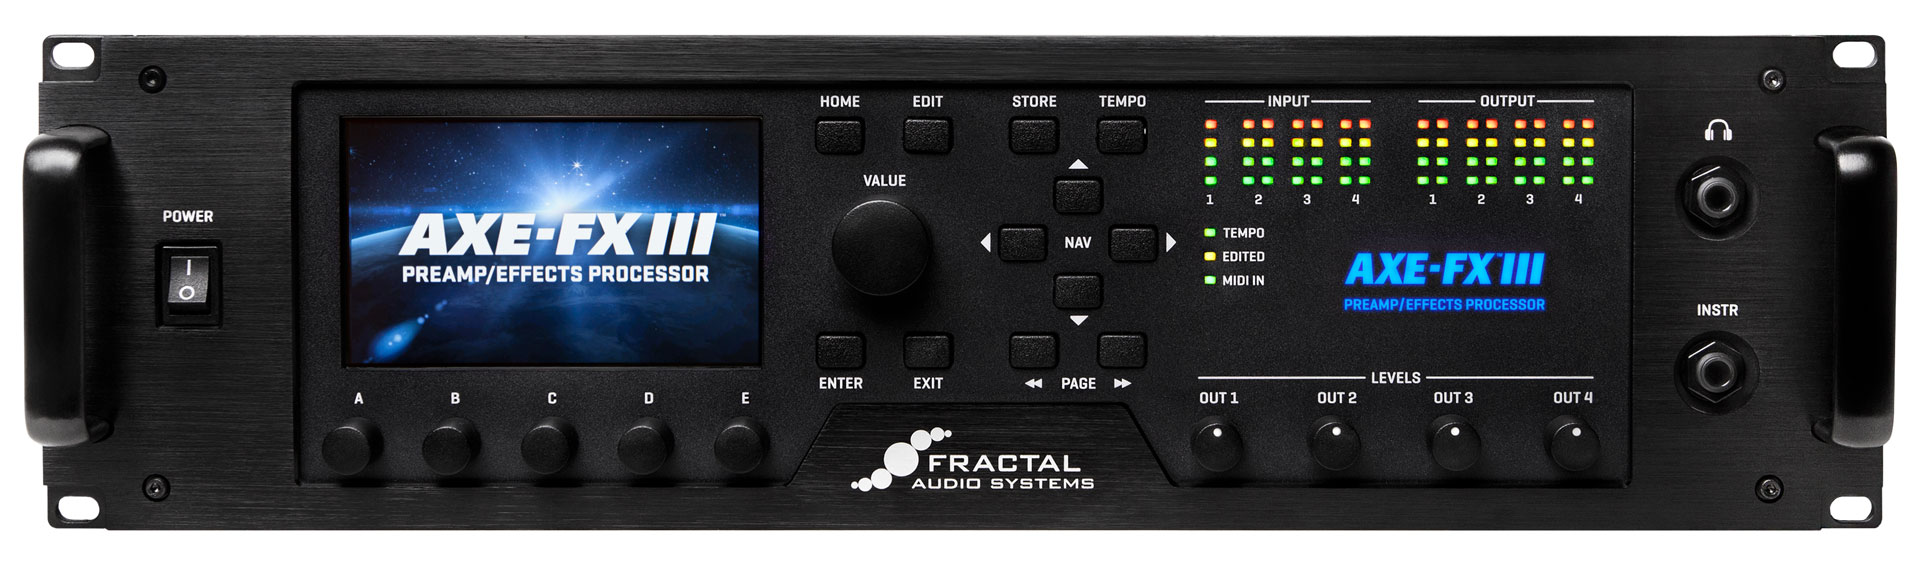 hight resolution of axe fx iii front panel